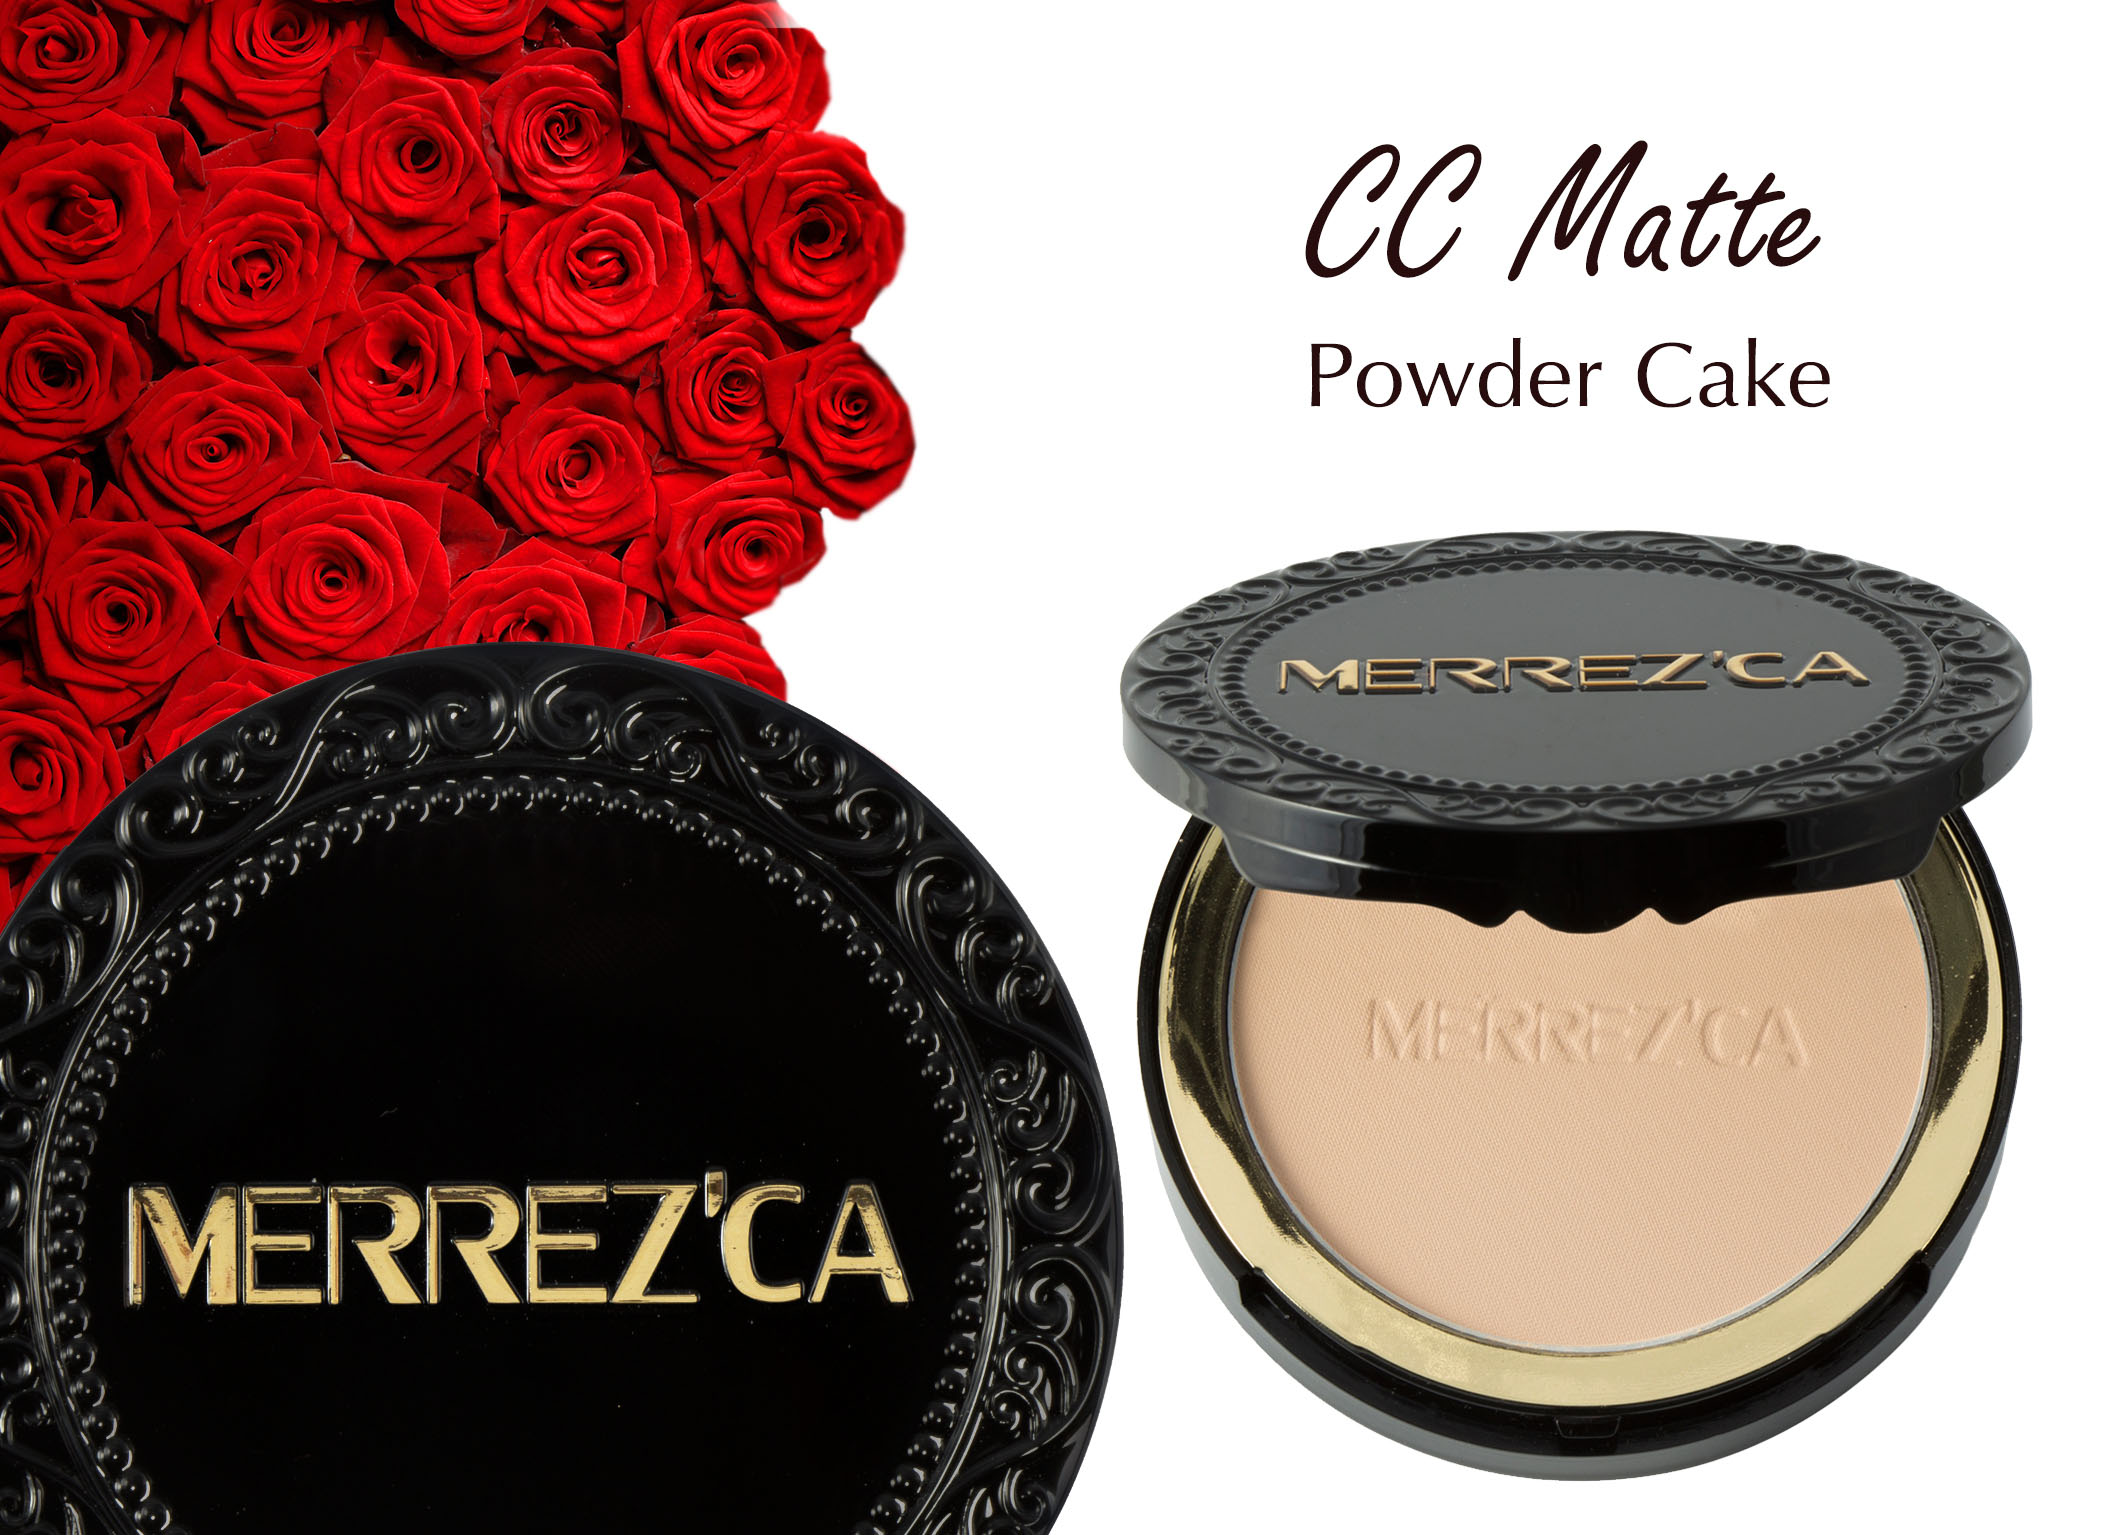 Merrezca CC Matte Powder Cake SPF45/PA++ 13g. No.21 Light Nude ผิวขาว